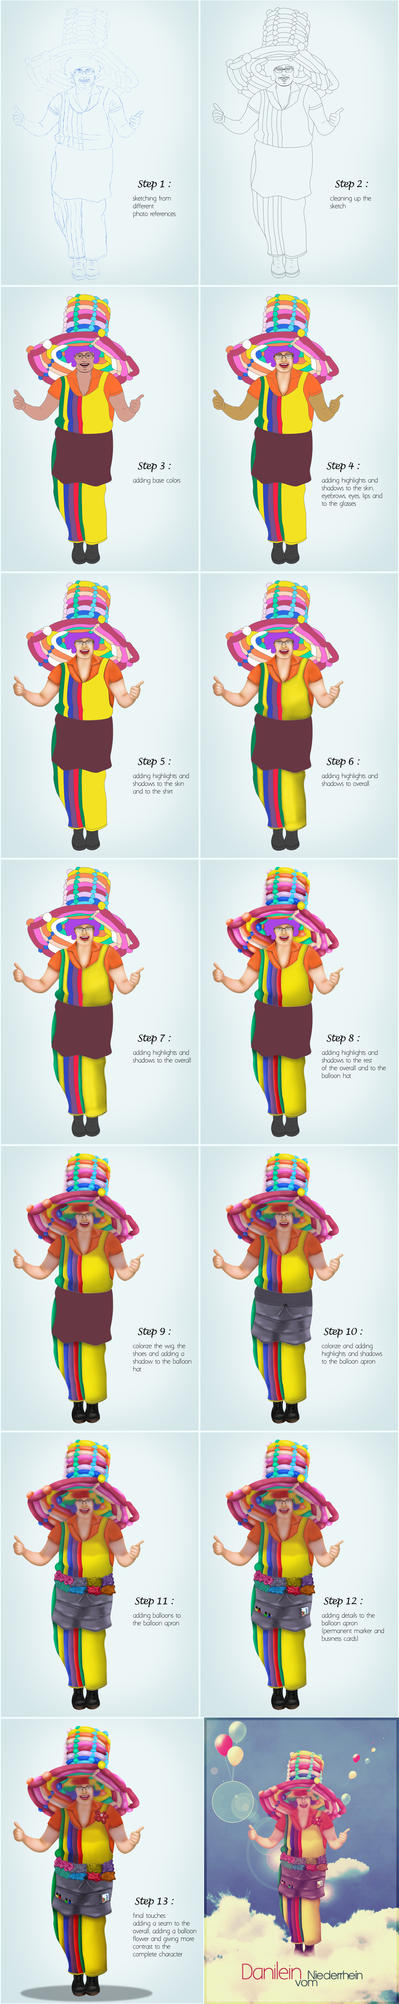 Character Design step by step by S-inspiration